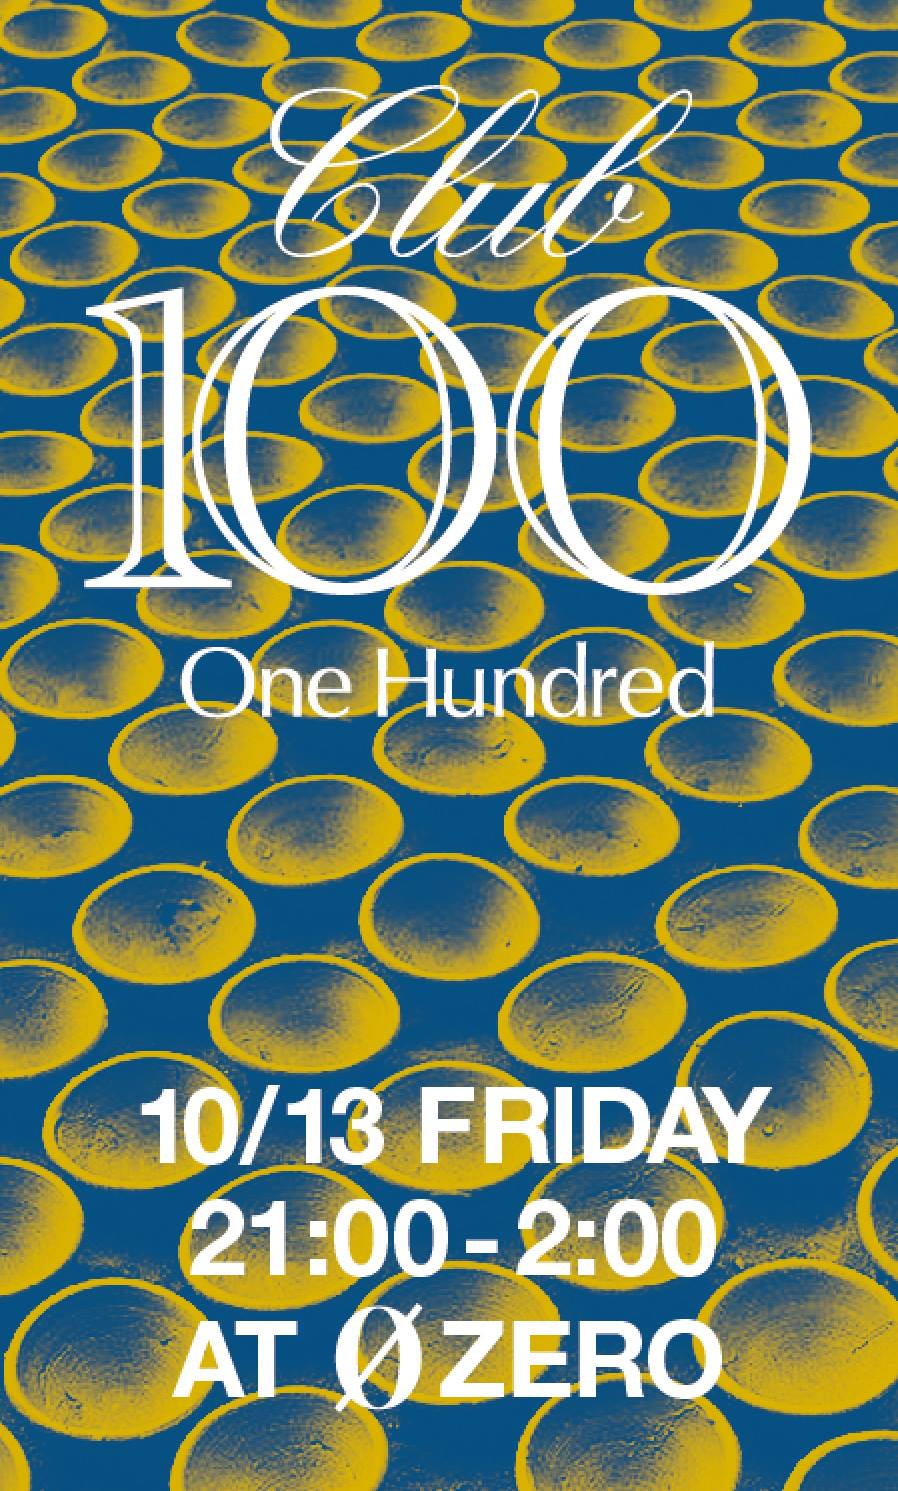 CLUB100 (One Hundred)